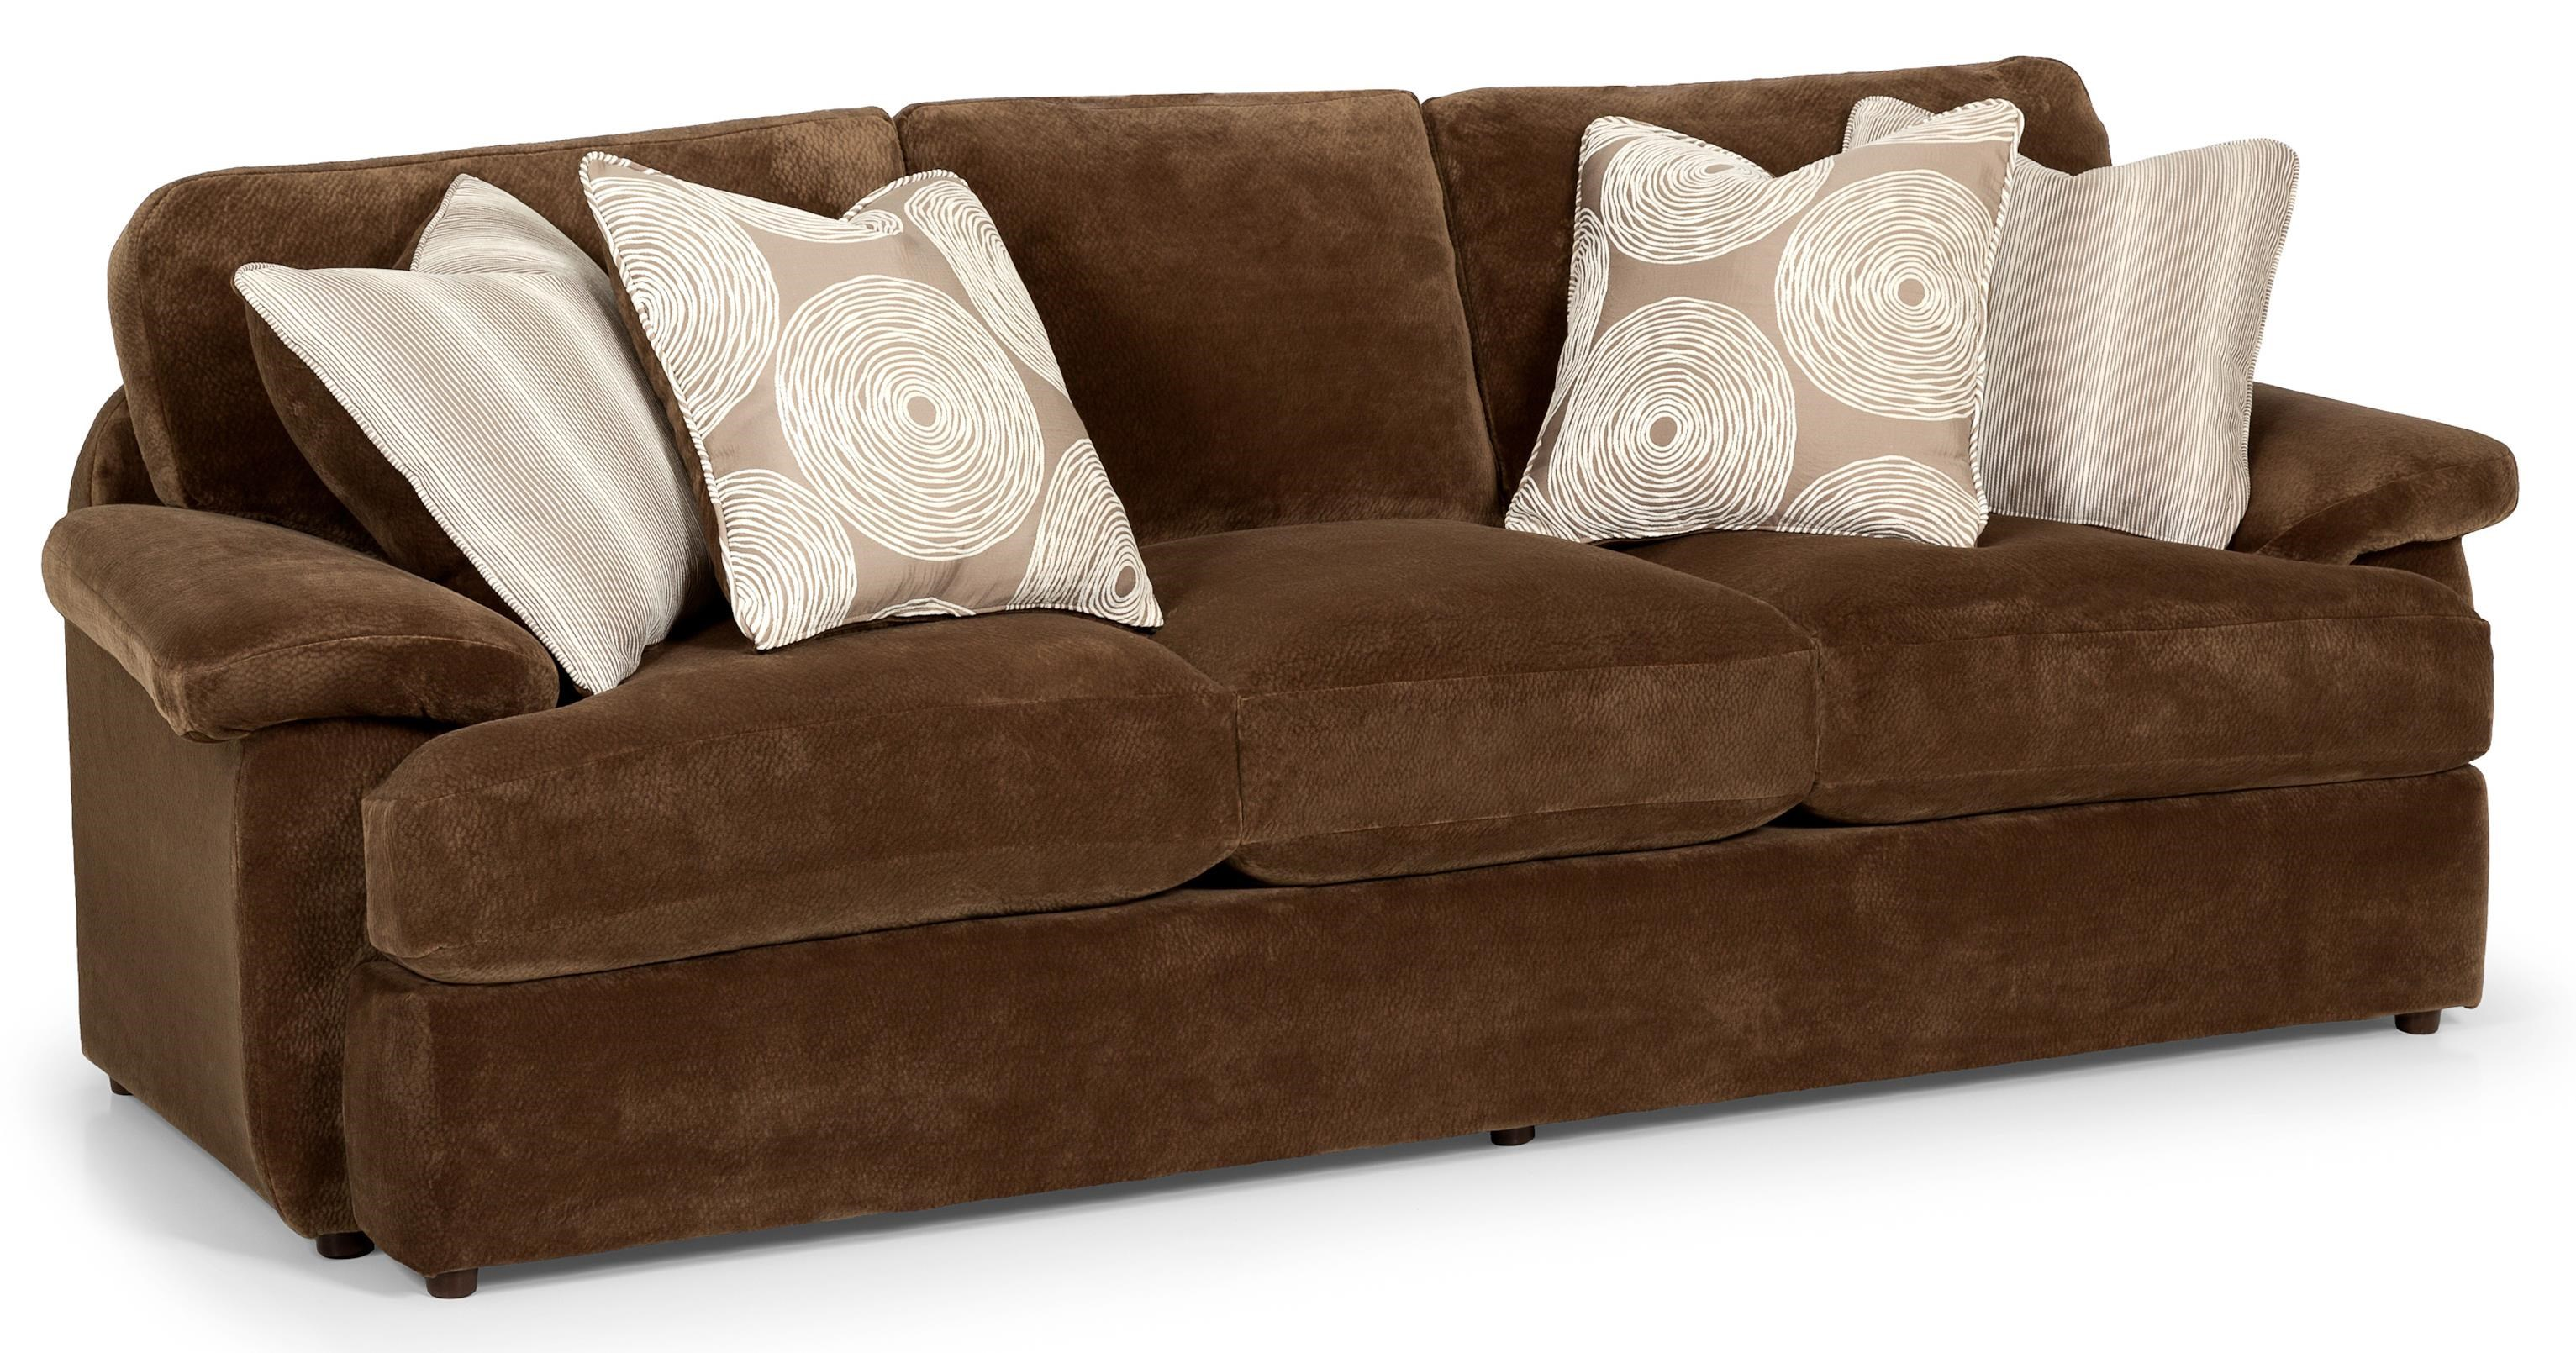 Marvelous Stanton 186 Casual Three Over Three Sofa With Feather Seating